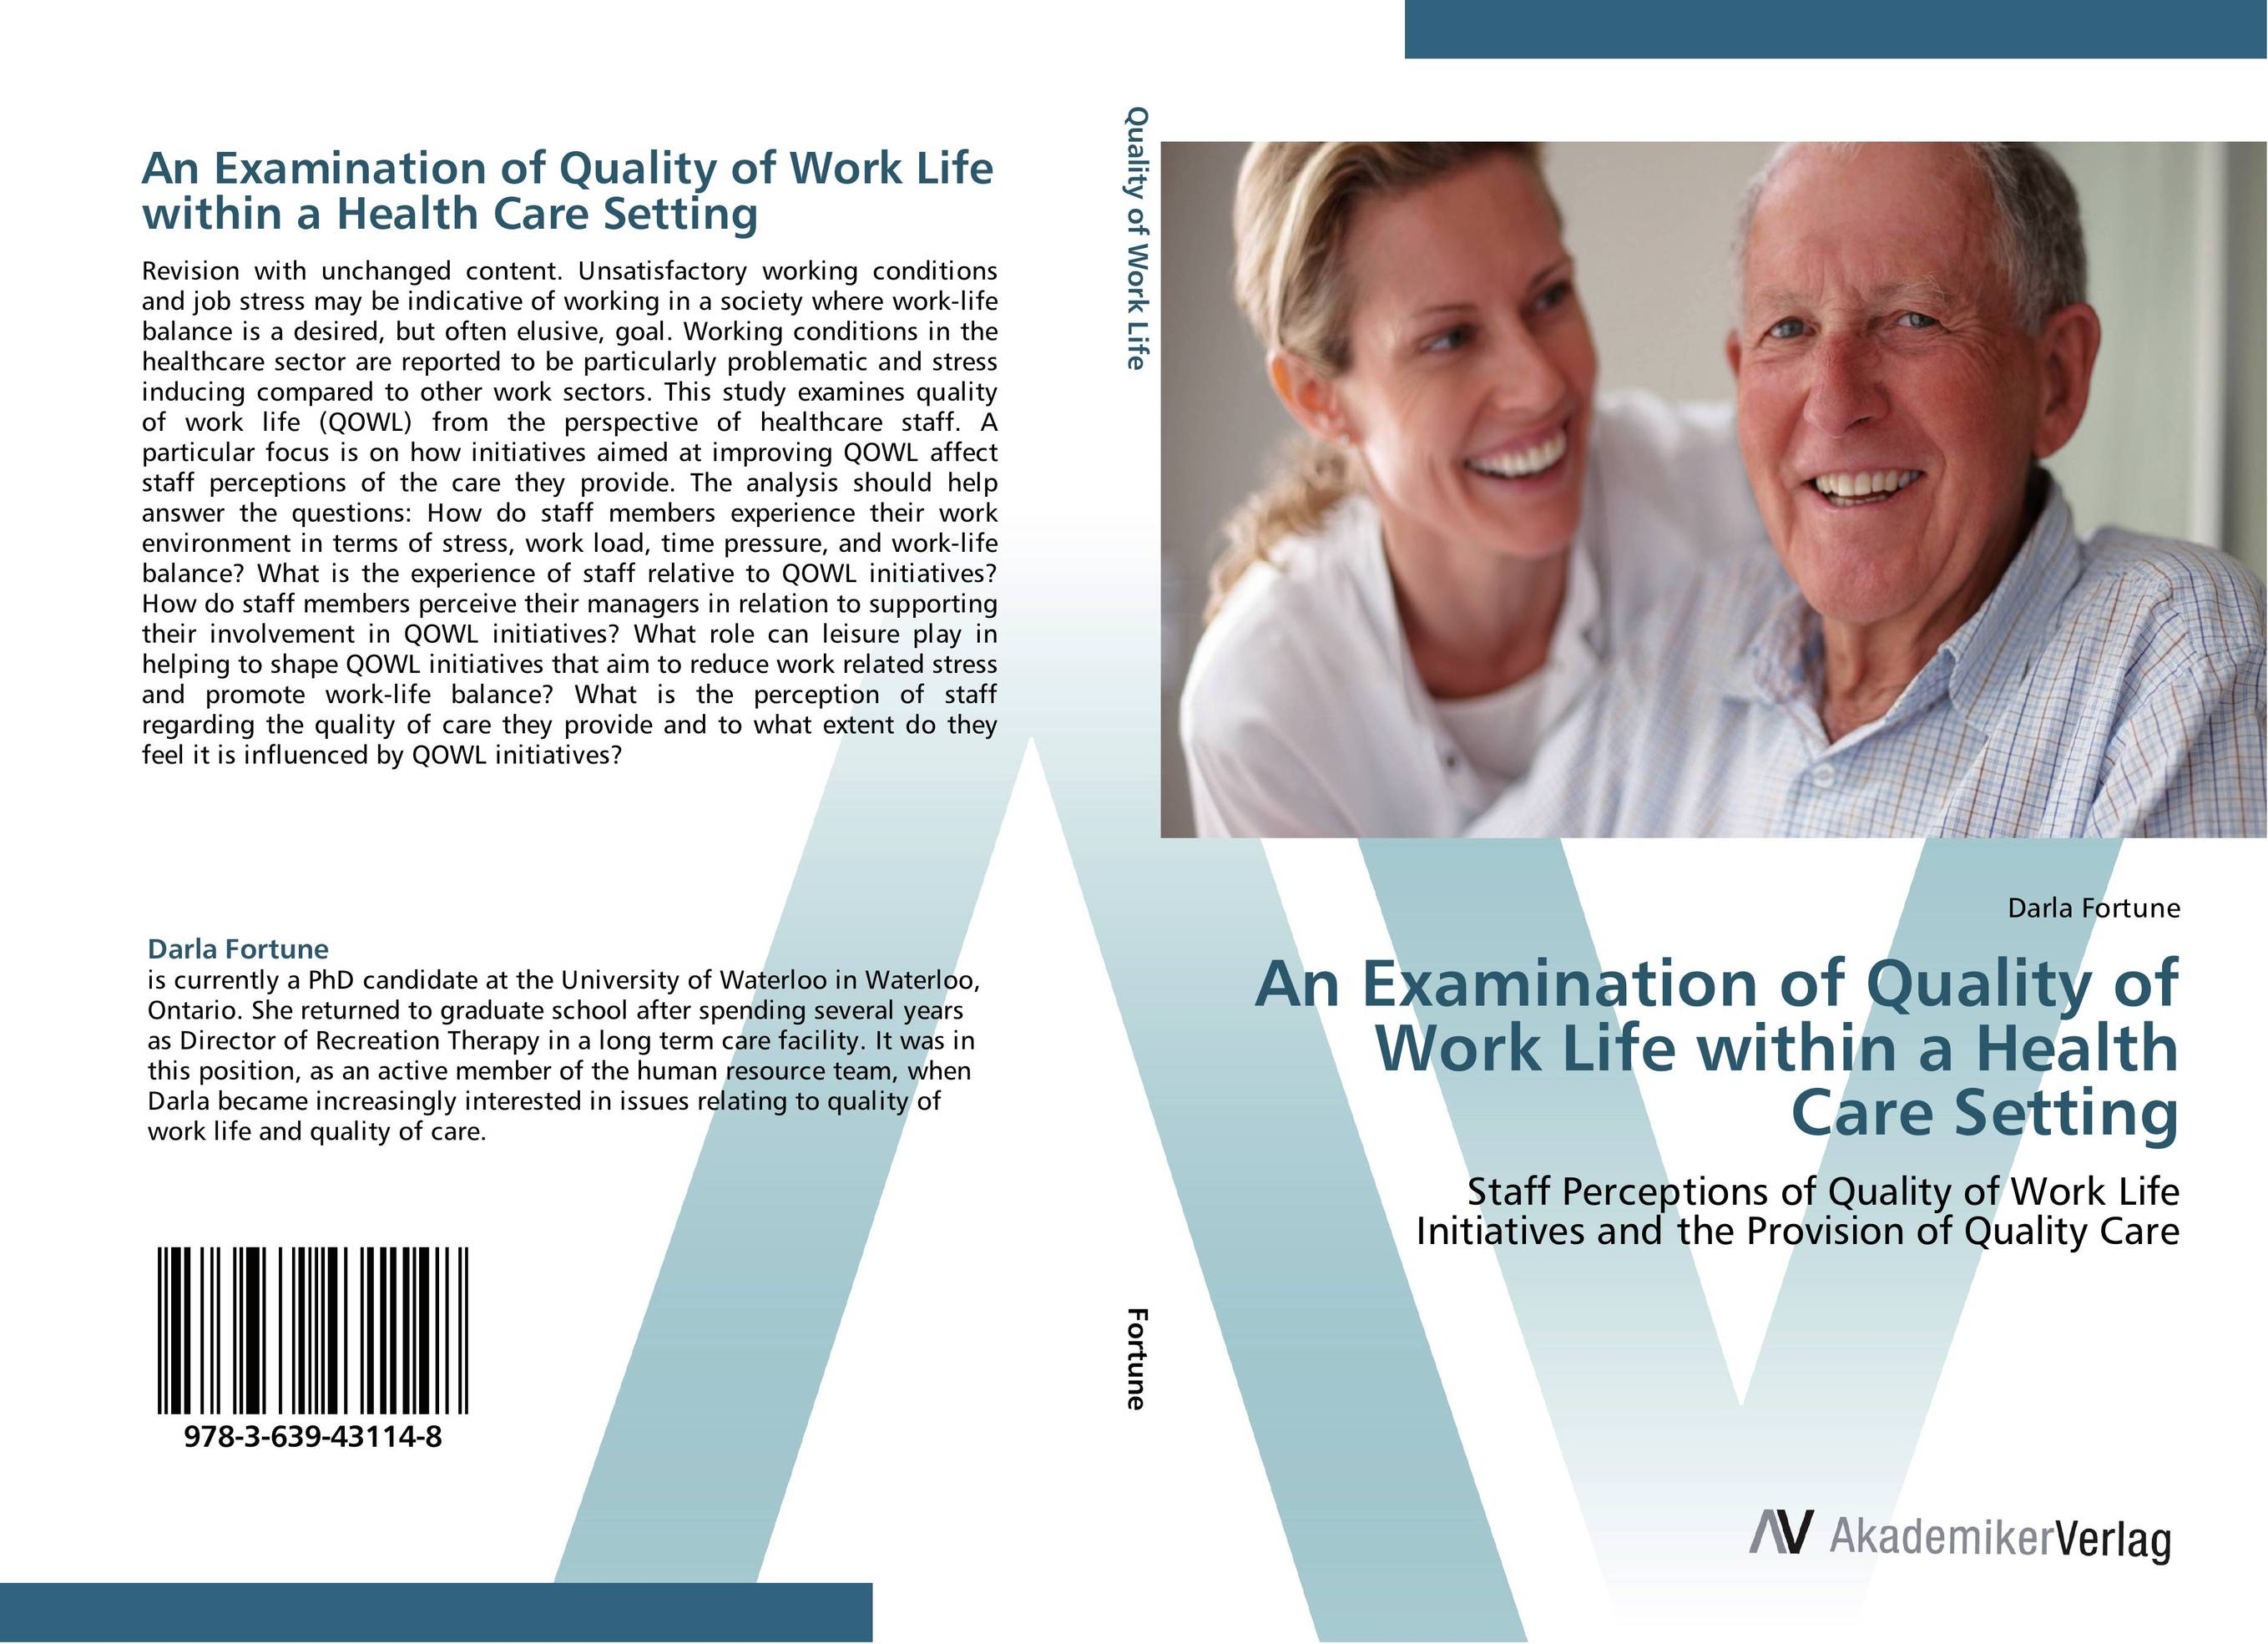 An Examination of Quality of Work Life within a Health Care Setting sadiq sagheer job stress role conflict work life balance impacts on sales personnel